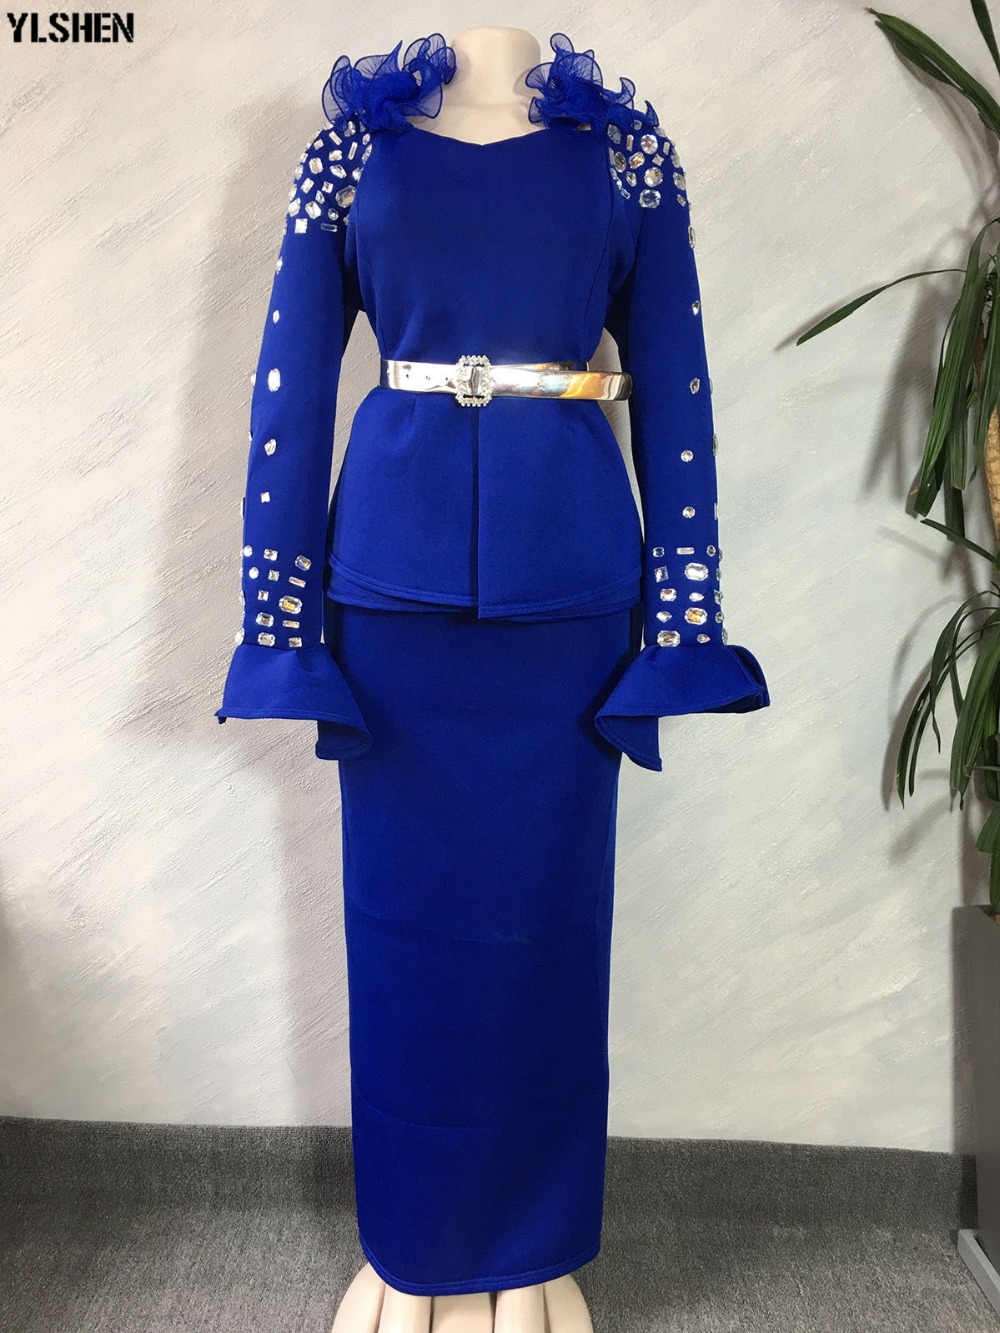 Length 150cm African Dresses for Women Dashiki Nail Bead African Clothes Space Layer African Gown Skirt Long Sleeve Africa Dress 18